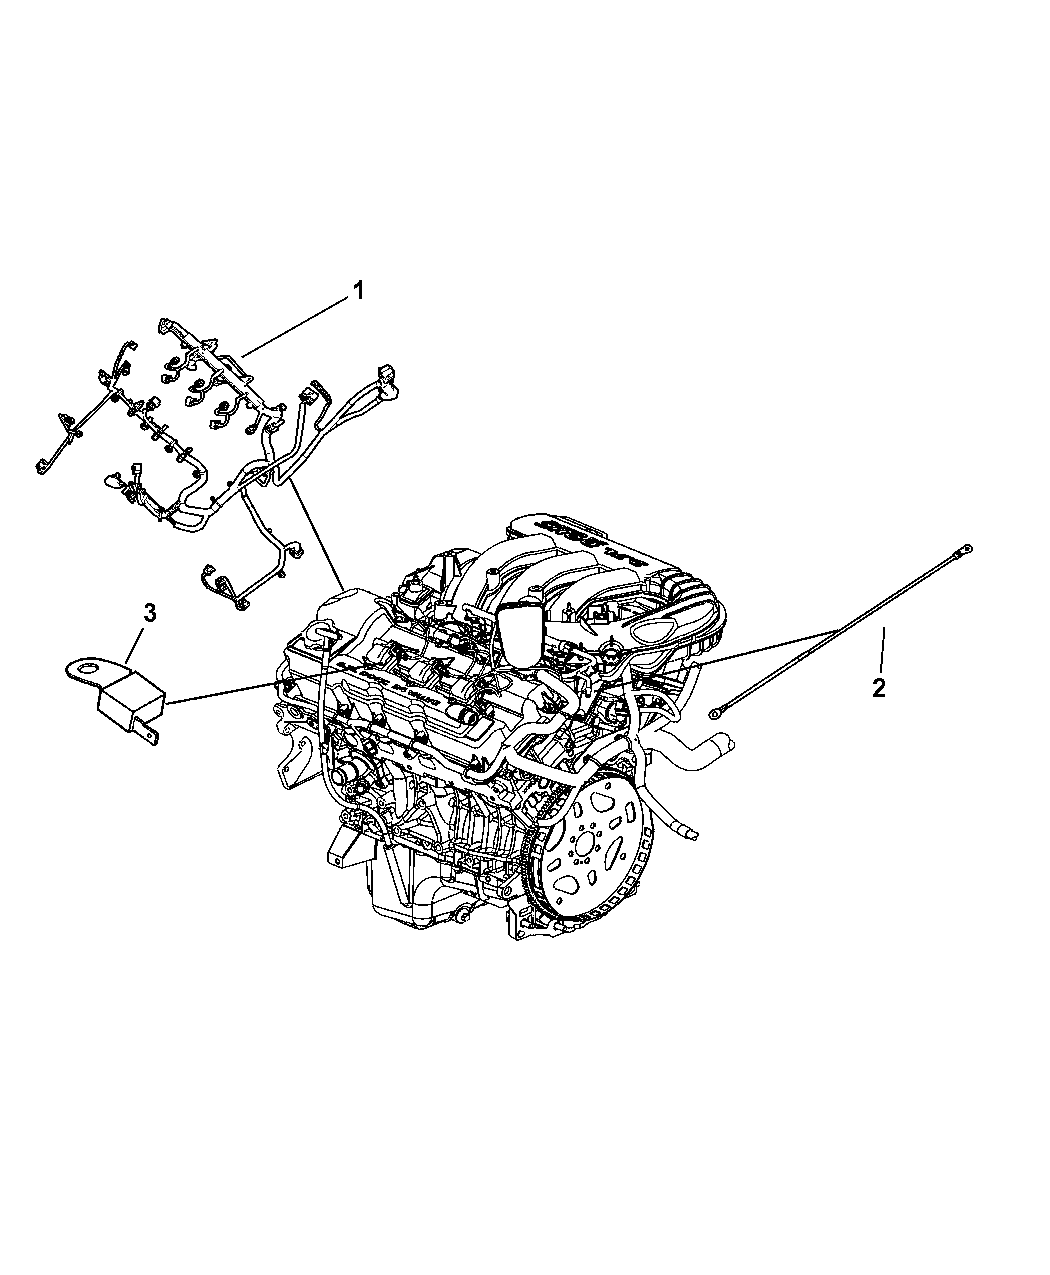 dodge charger engine diagram